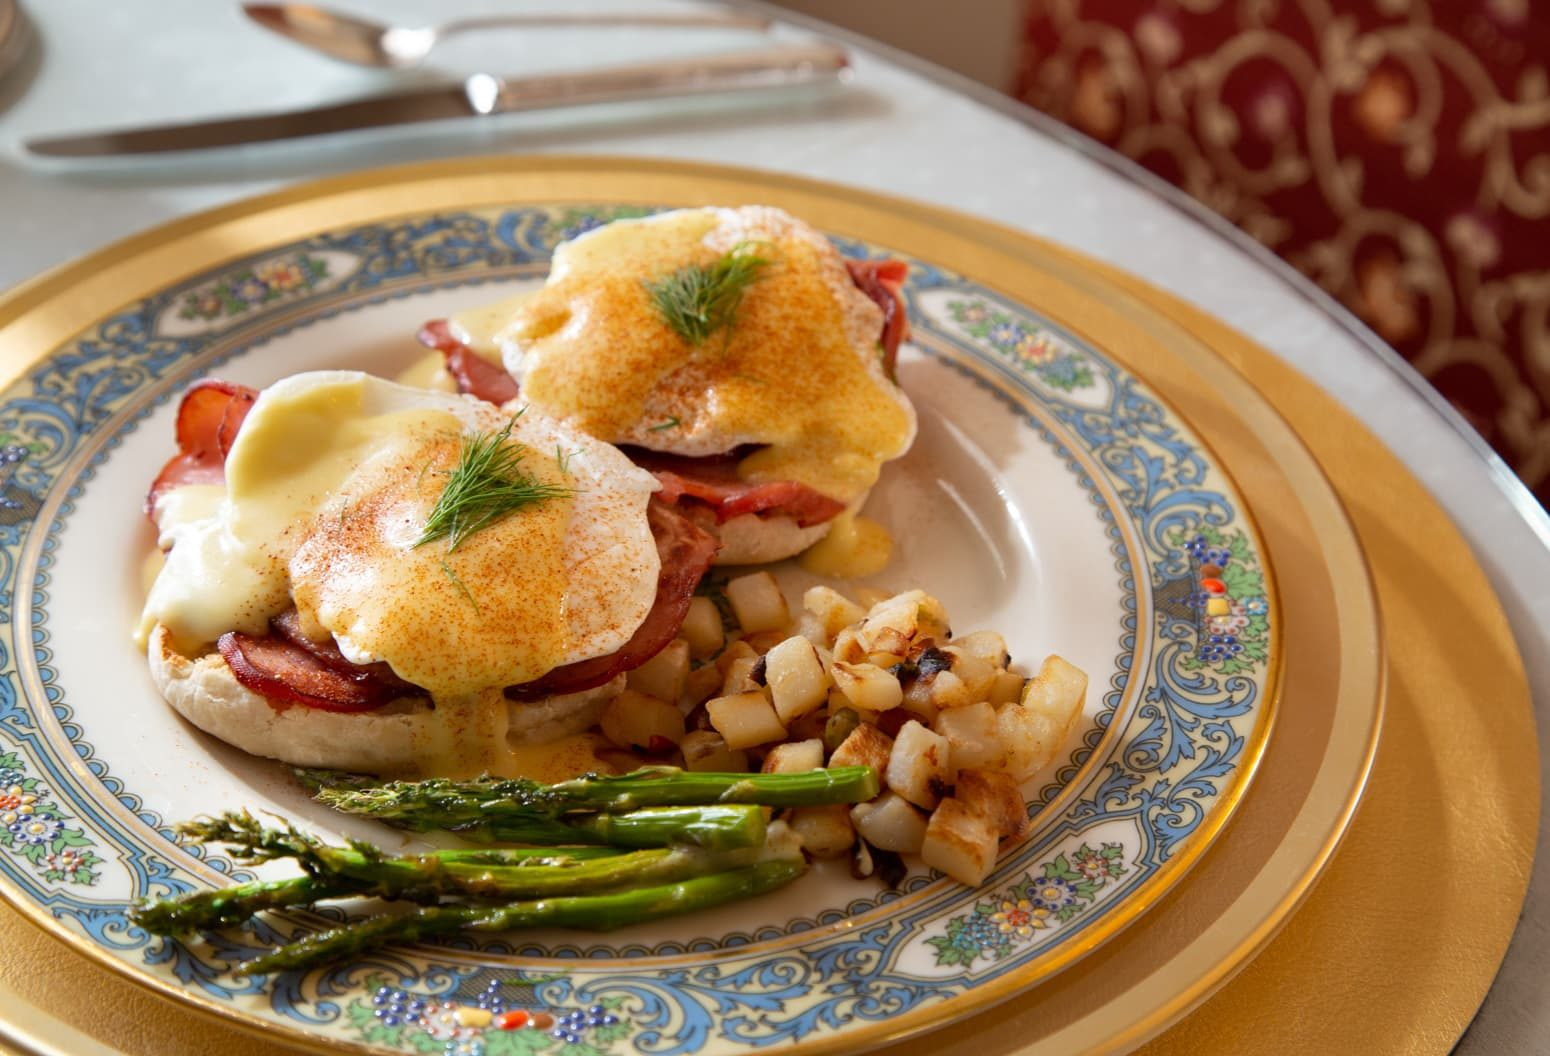 Eggs Benedict served with asparagus and breakfast potatoes